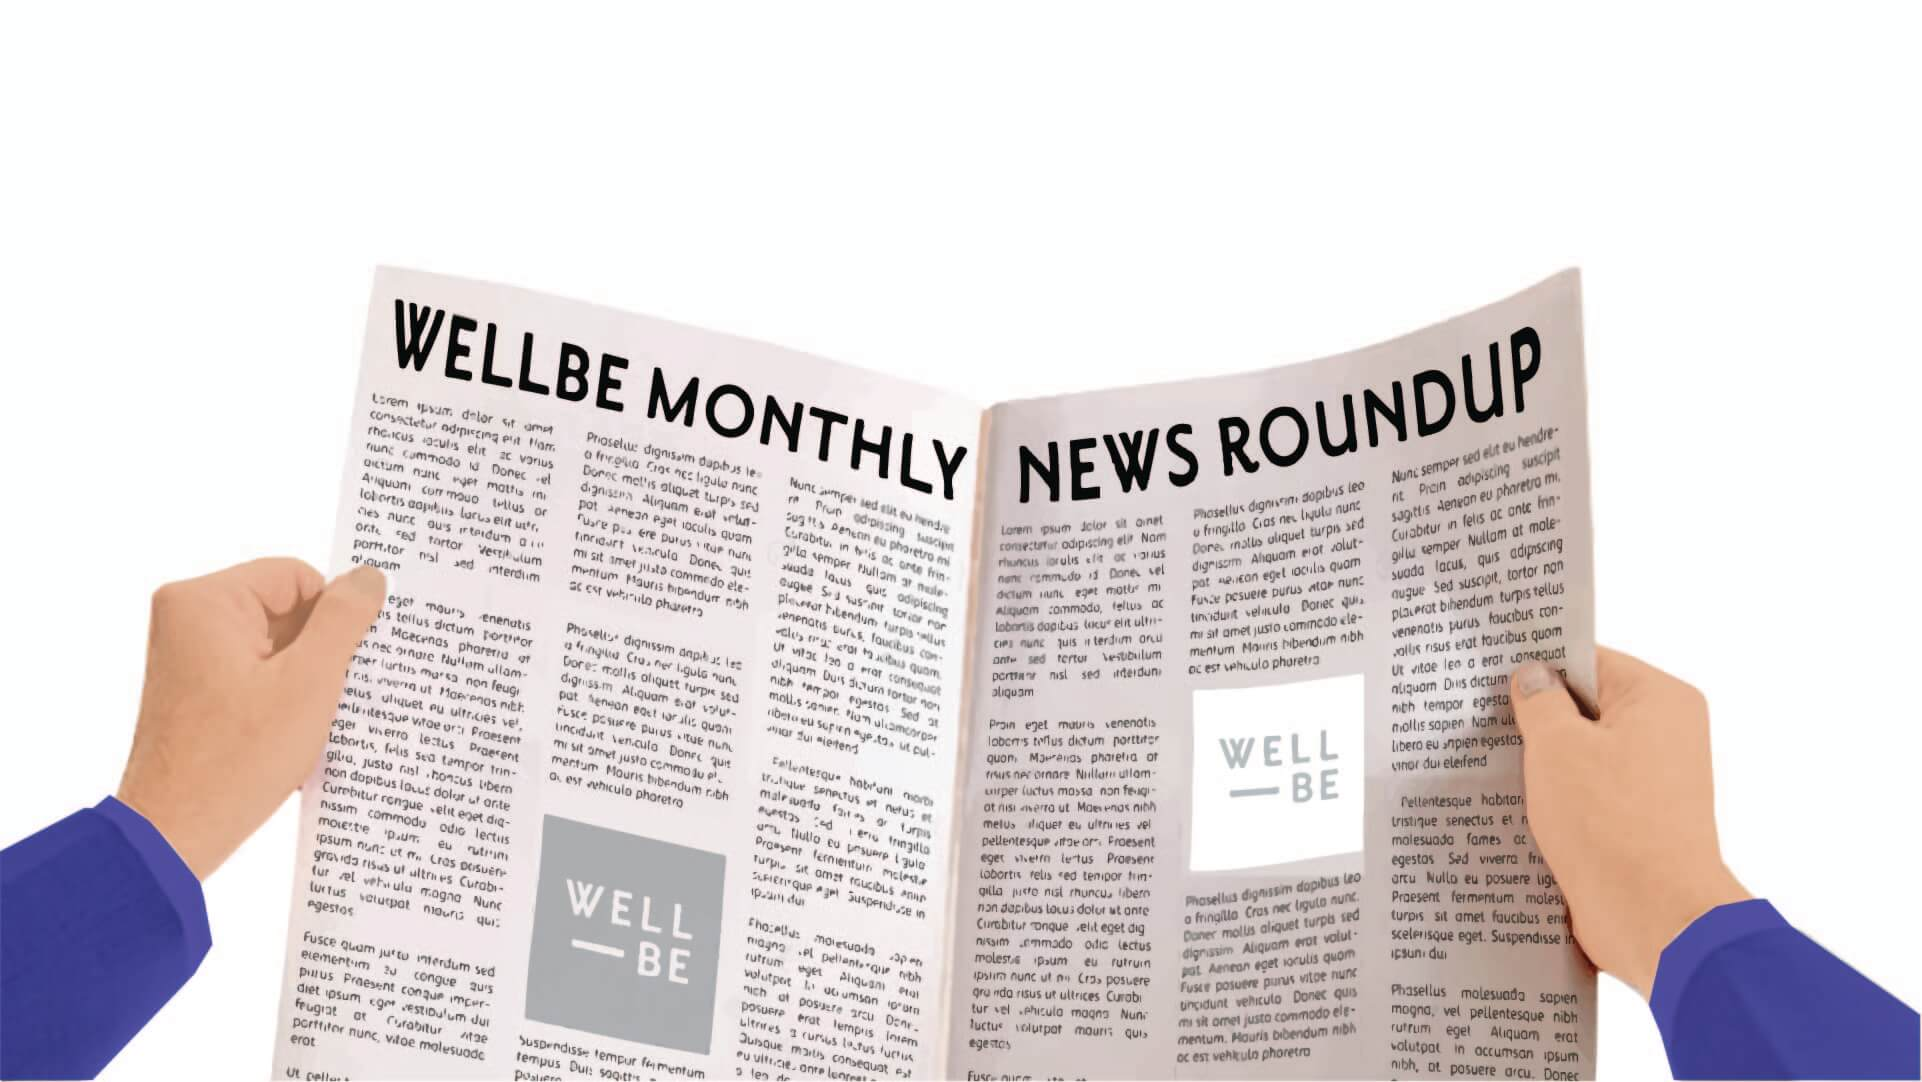 WellBe monthly health and wellness news roundup